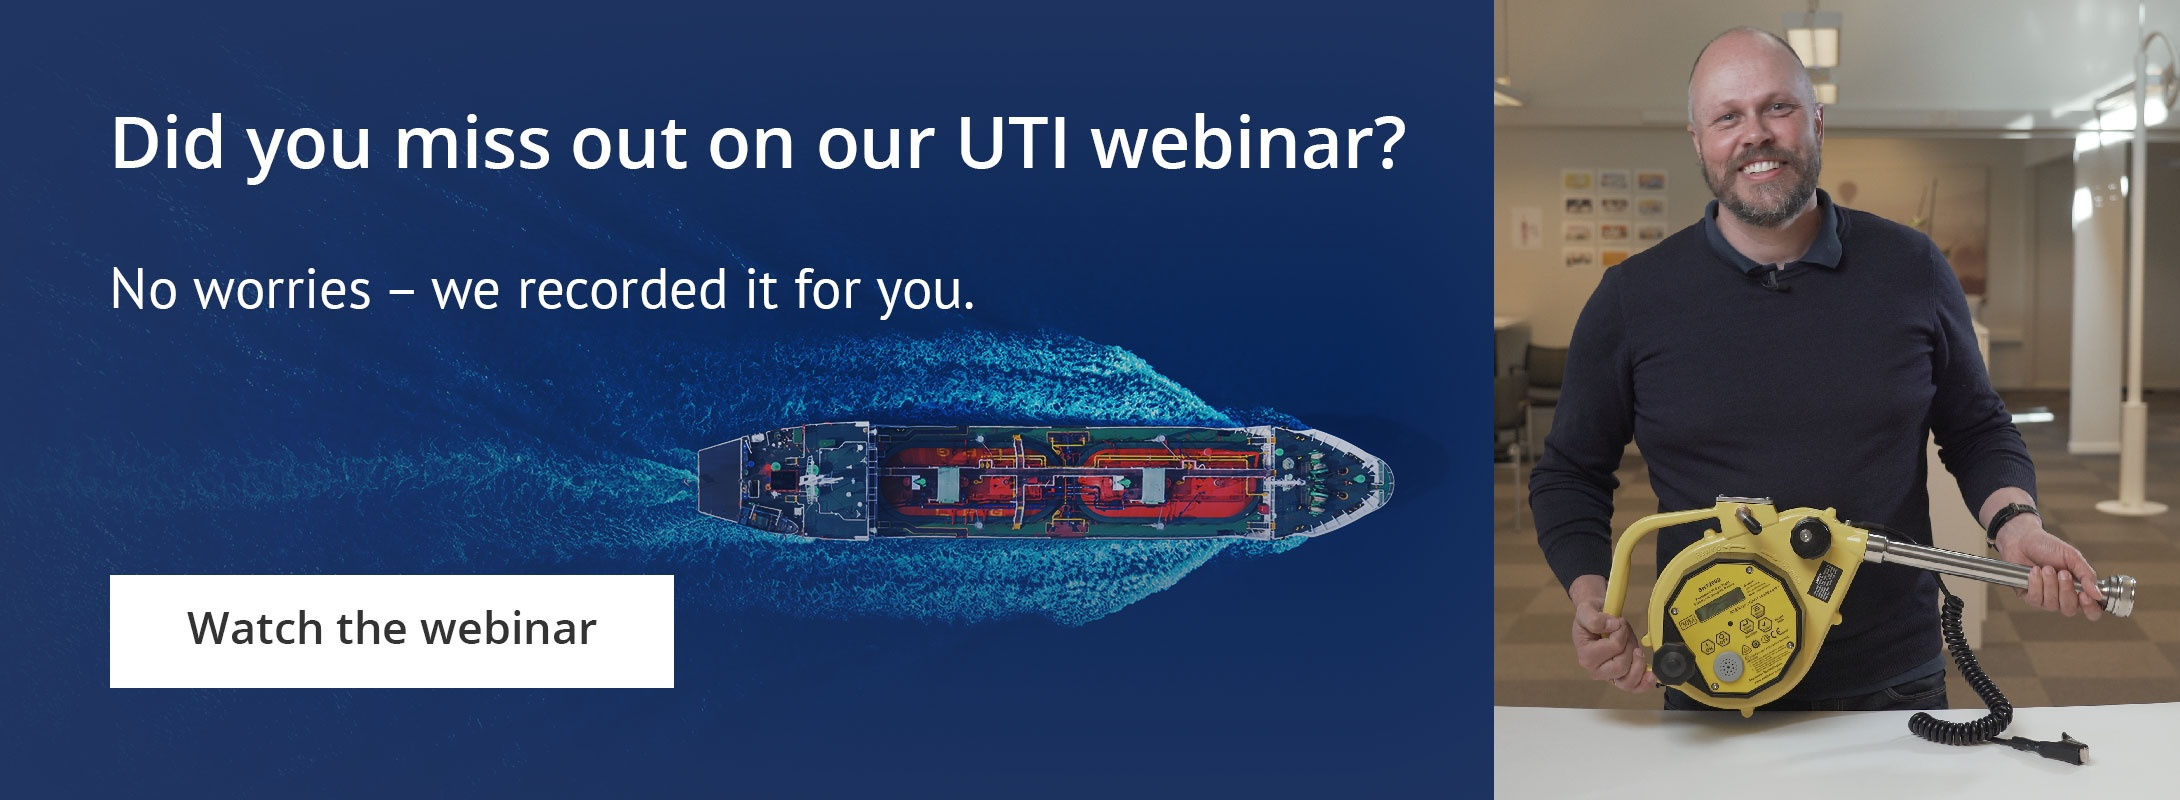 Did you miss out on our UTI webinar? Watch the replay here!